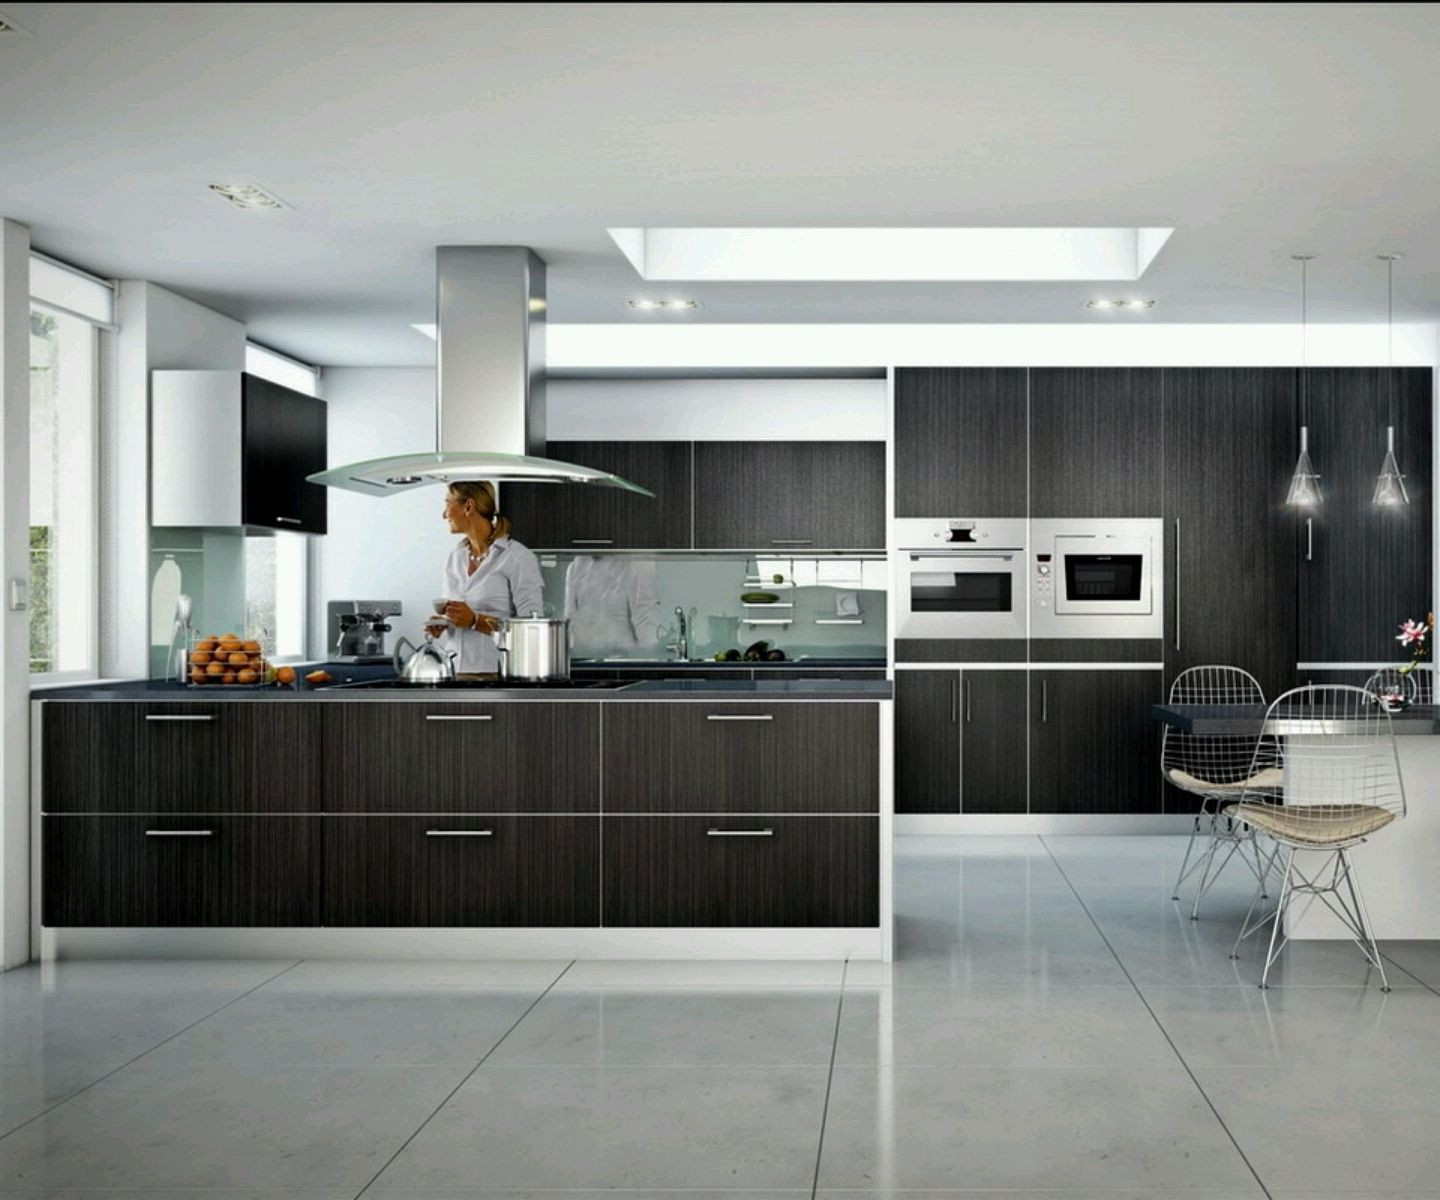 Contemporary Kitchen Vs Modern Kitchen: Kitchen Renovation Trends 2015; 27+ Ideas To Inspire